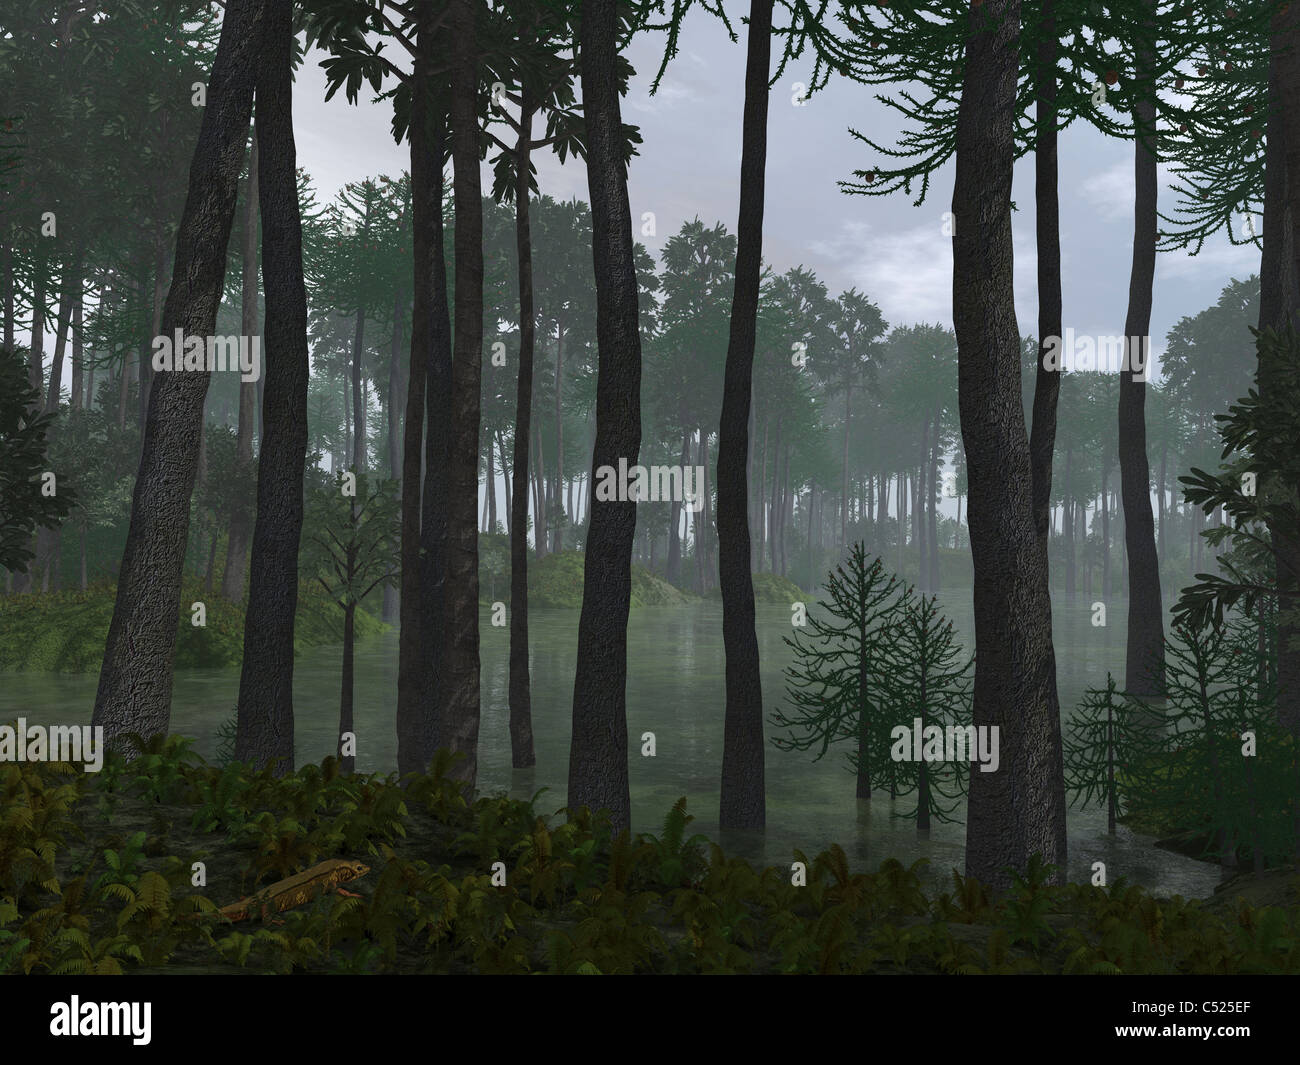 A forest of Cordaites and Araucaria. - Stock Image